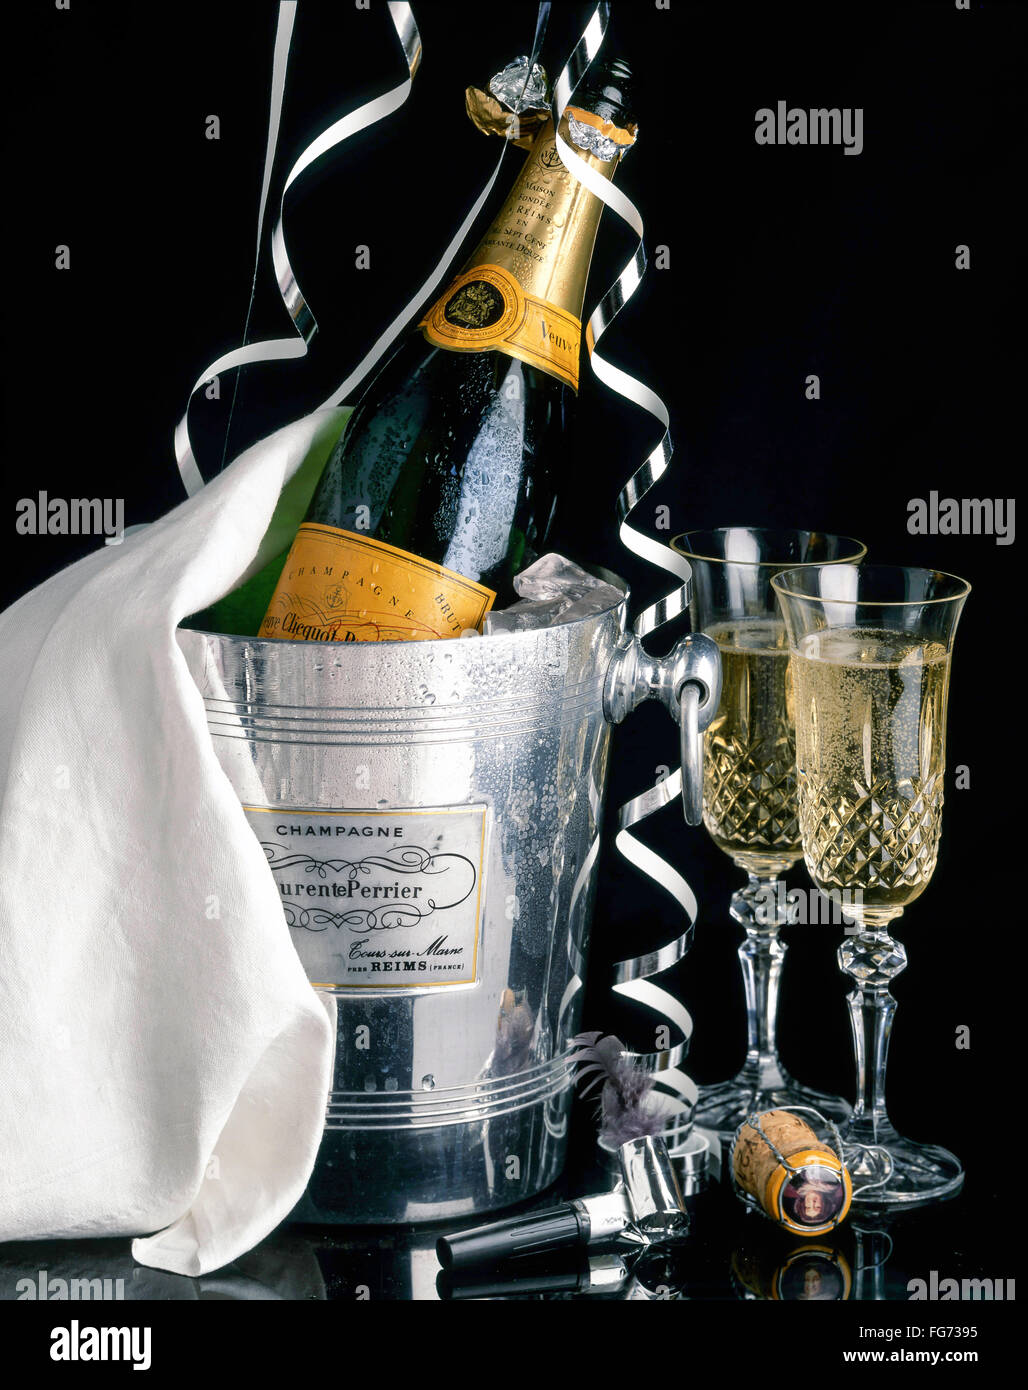 Veuve Clicquot champagne in ice-bucket with streamers and crystal glasses, London, England, United Kingdom - Stock Image